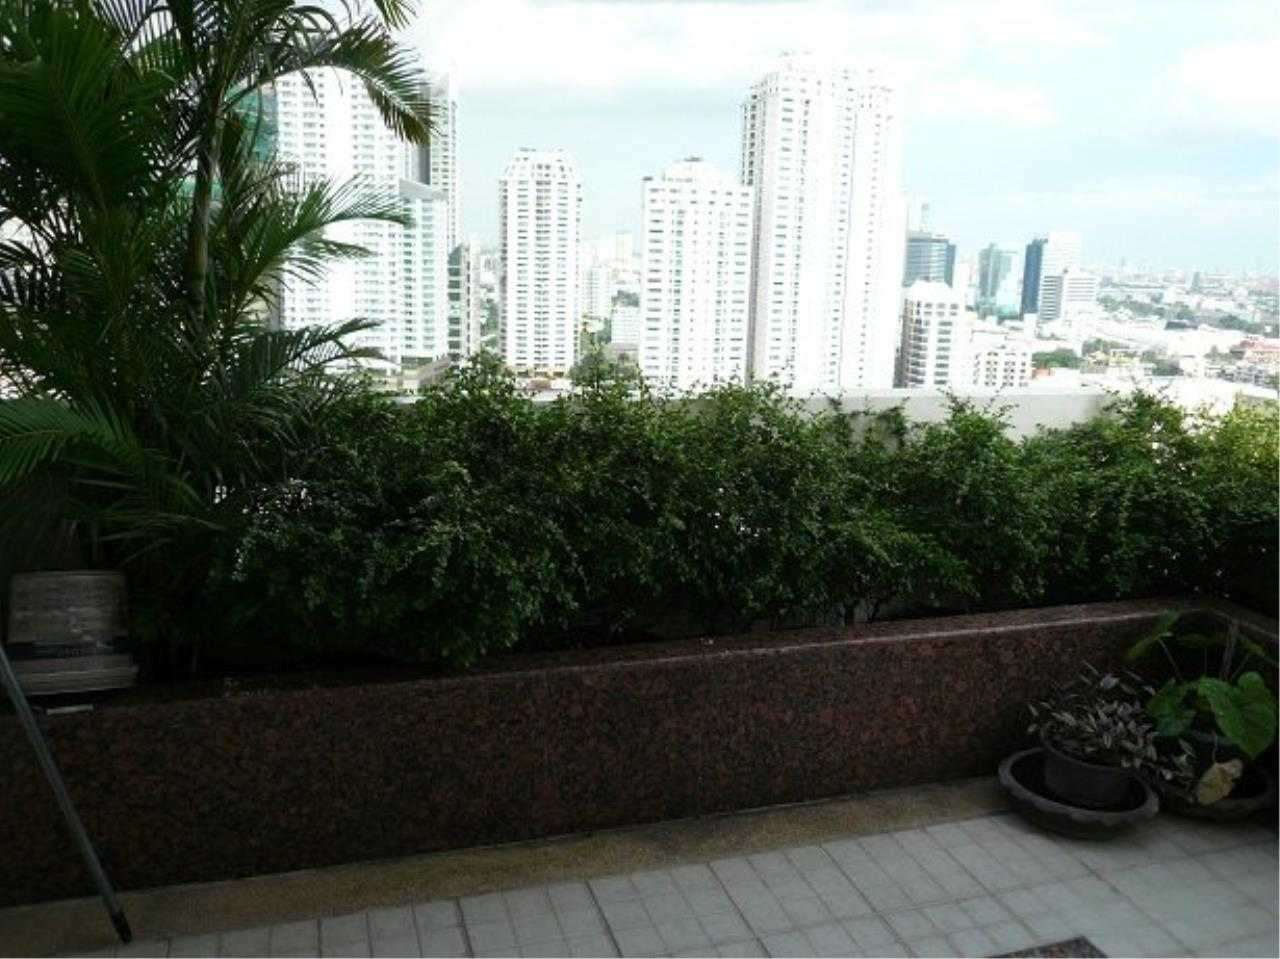 Piri Property Agency's Duplex Condominium in Asoke for Sale - 3 Bedroom 19